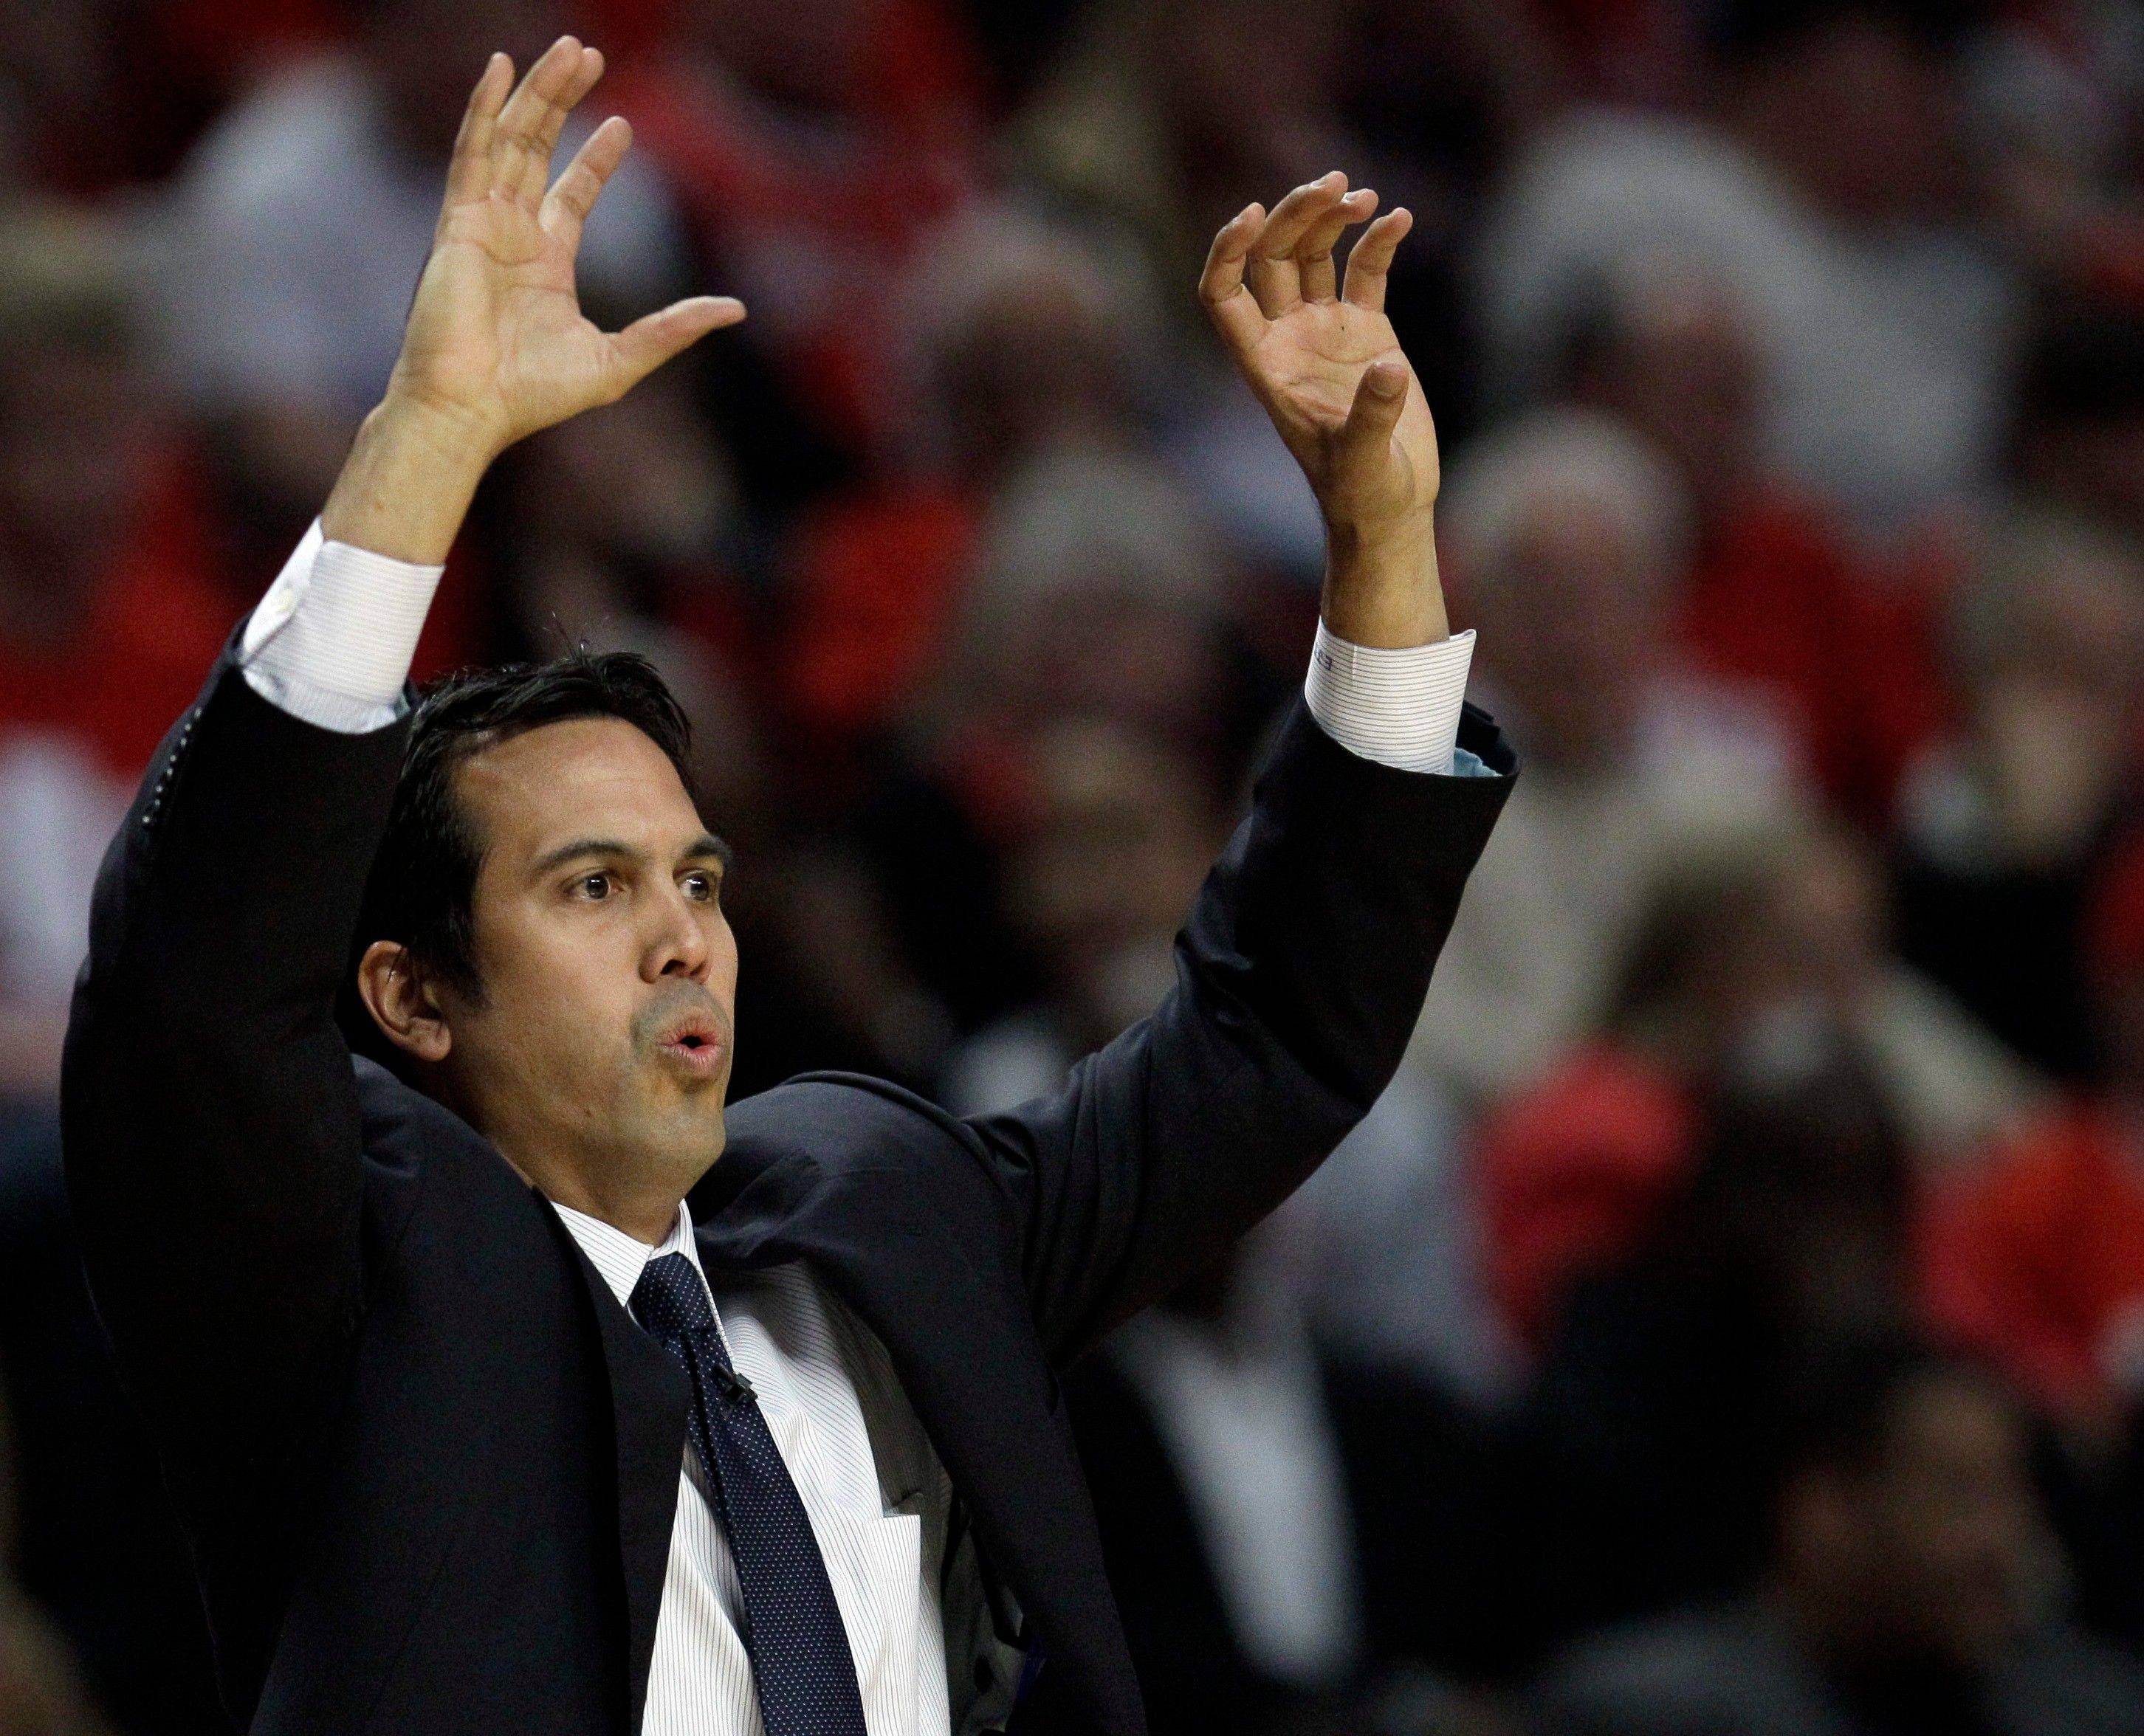 Miami Heat head coach Erik Spoelstra signals to his team during Game 1 of the NBA Eastern Conference finals.